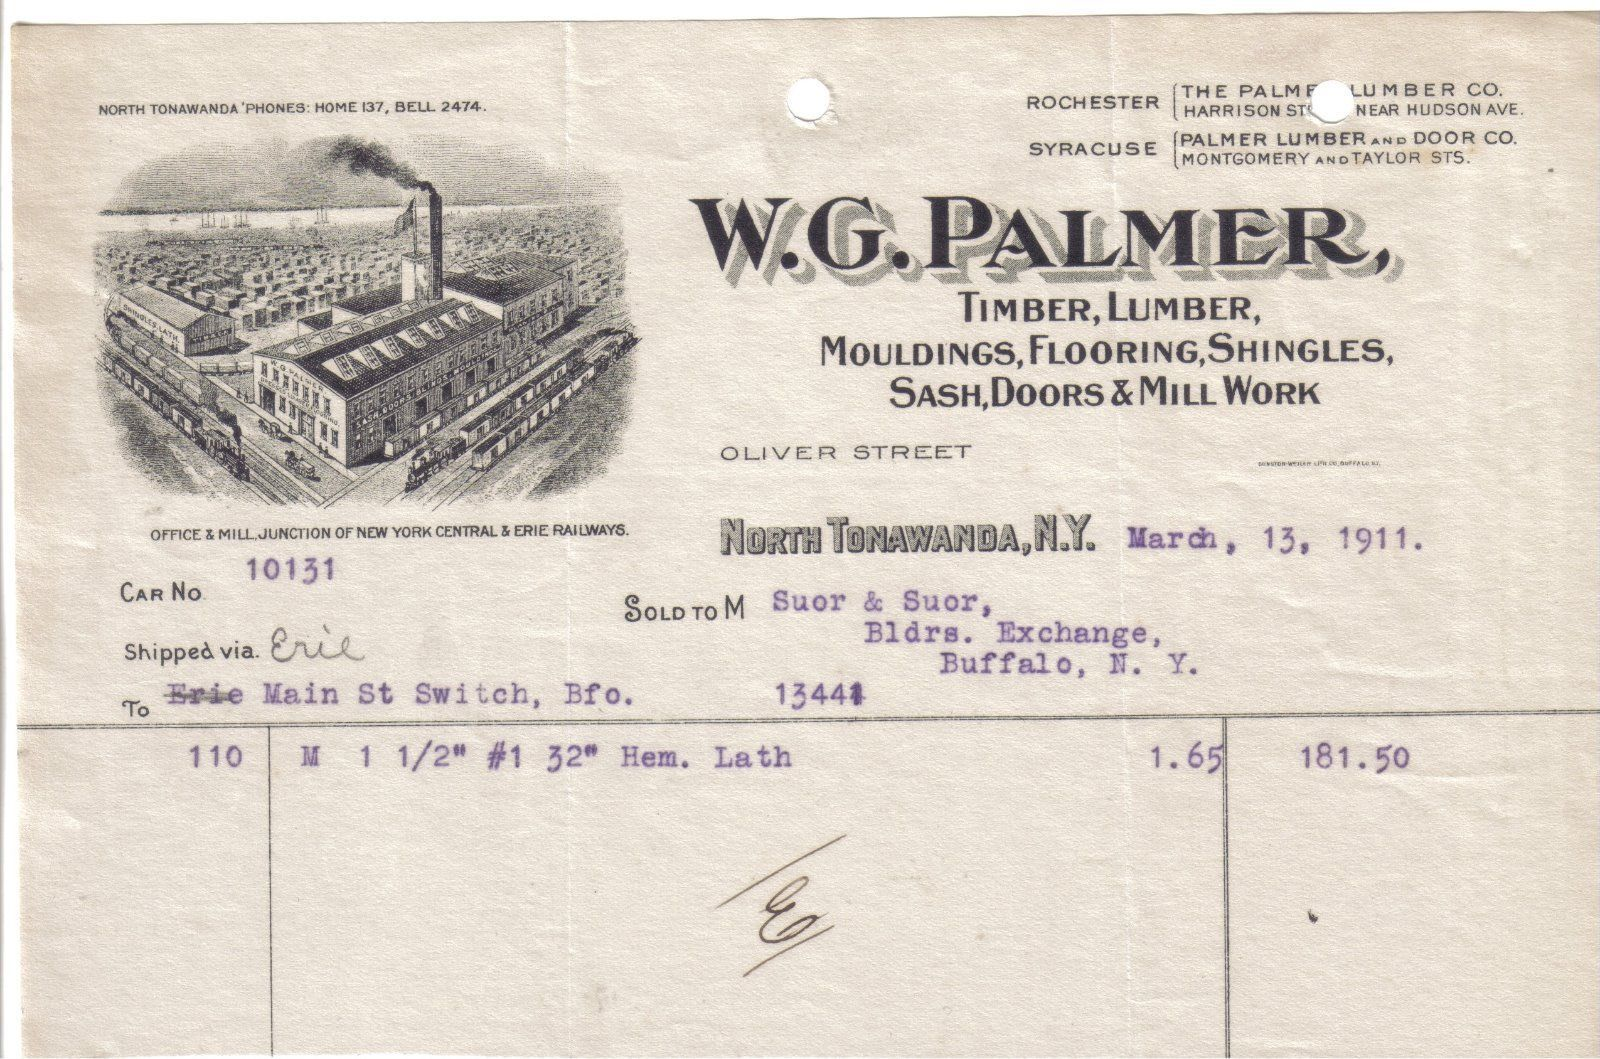 W.G. Palmer, Oliver Street, illustrated letterhead (1911-03-13).jpg